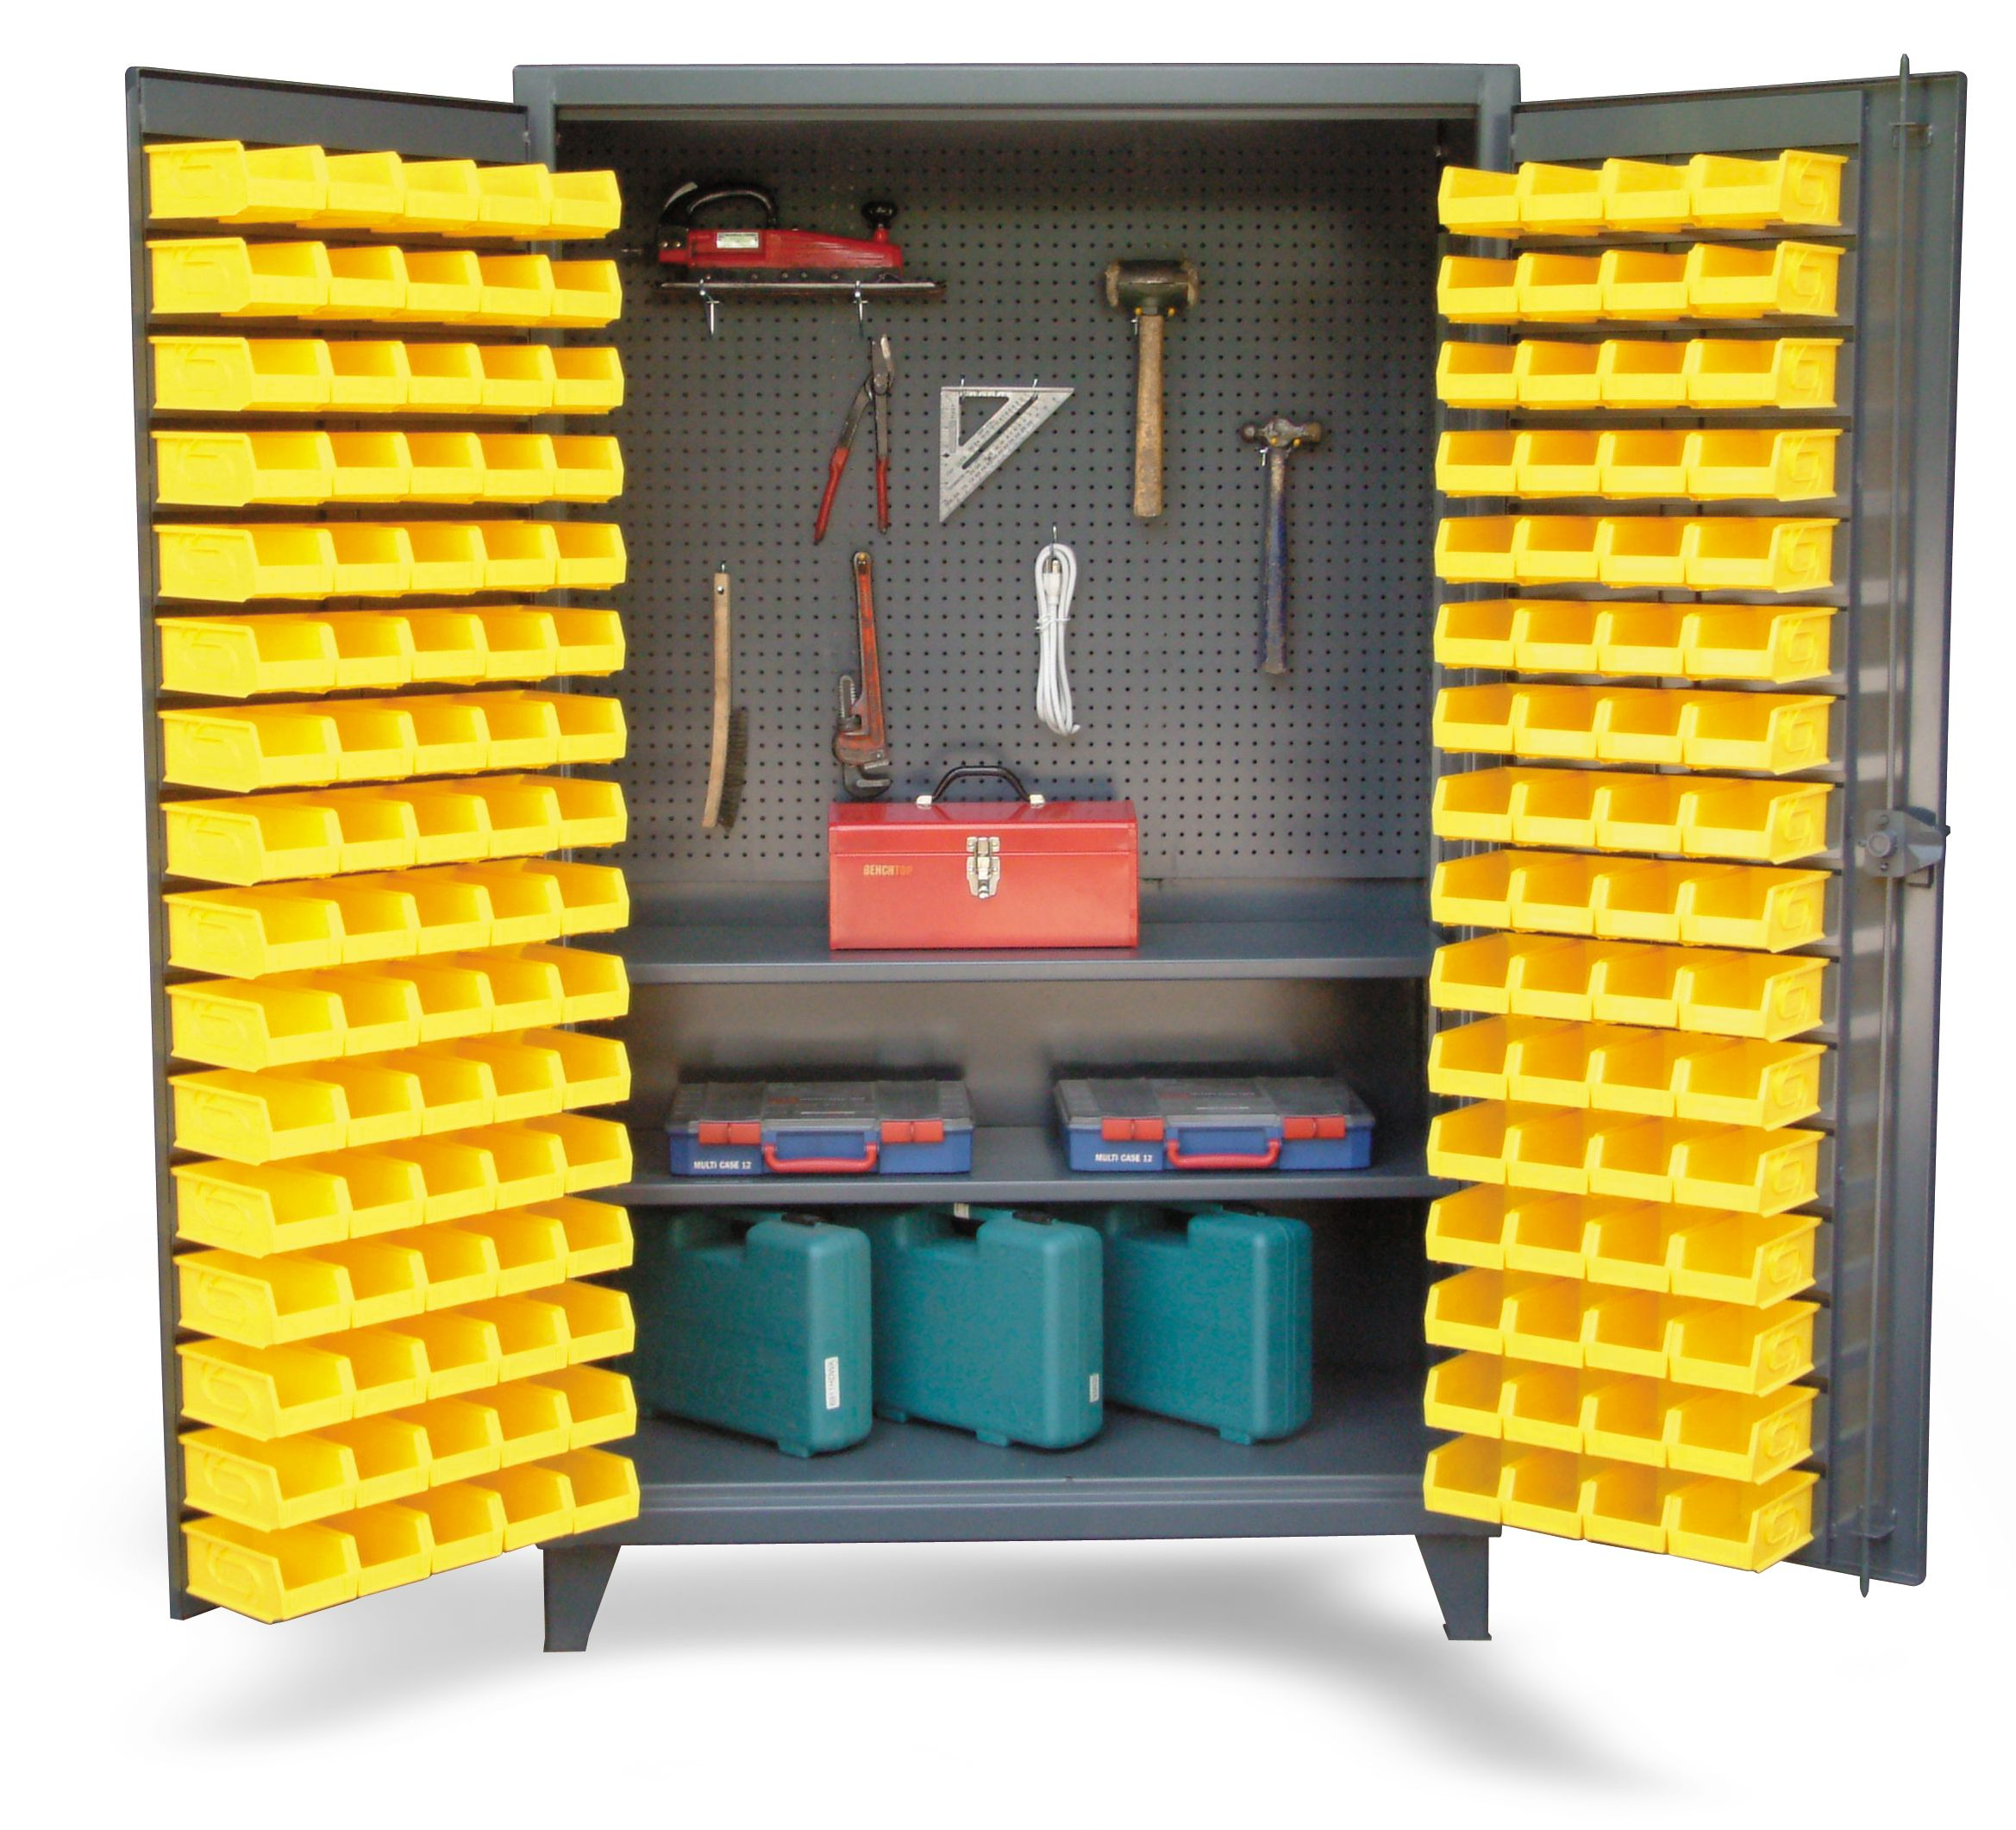 Upright Tool Storage Bin Cabinet   Bin Cabinet With Pegboard Back And  Shelves. Bins On